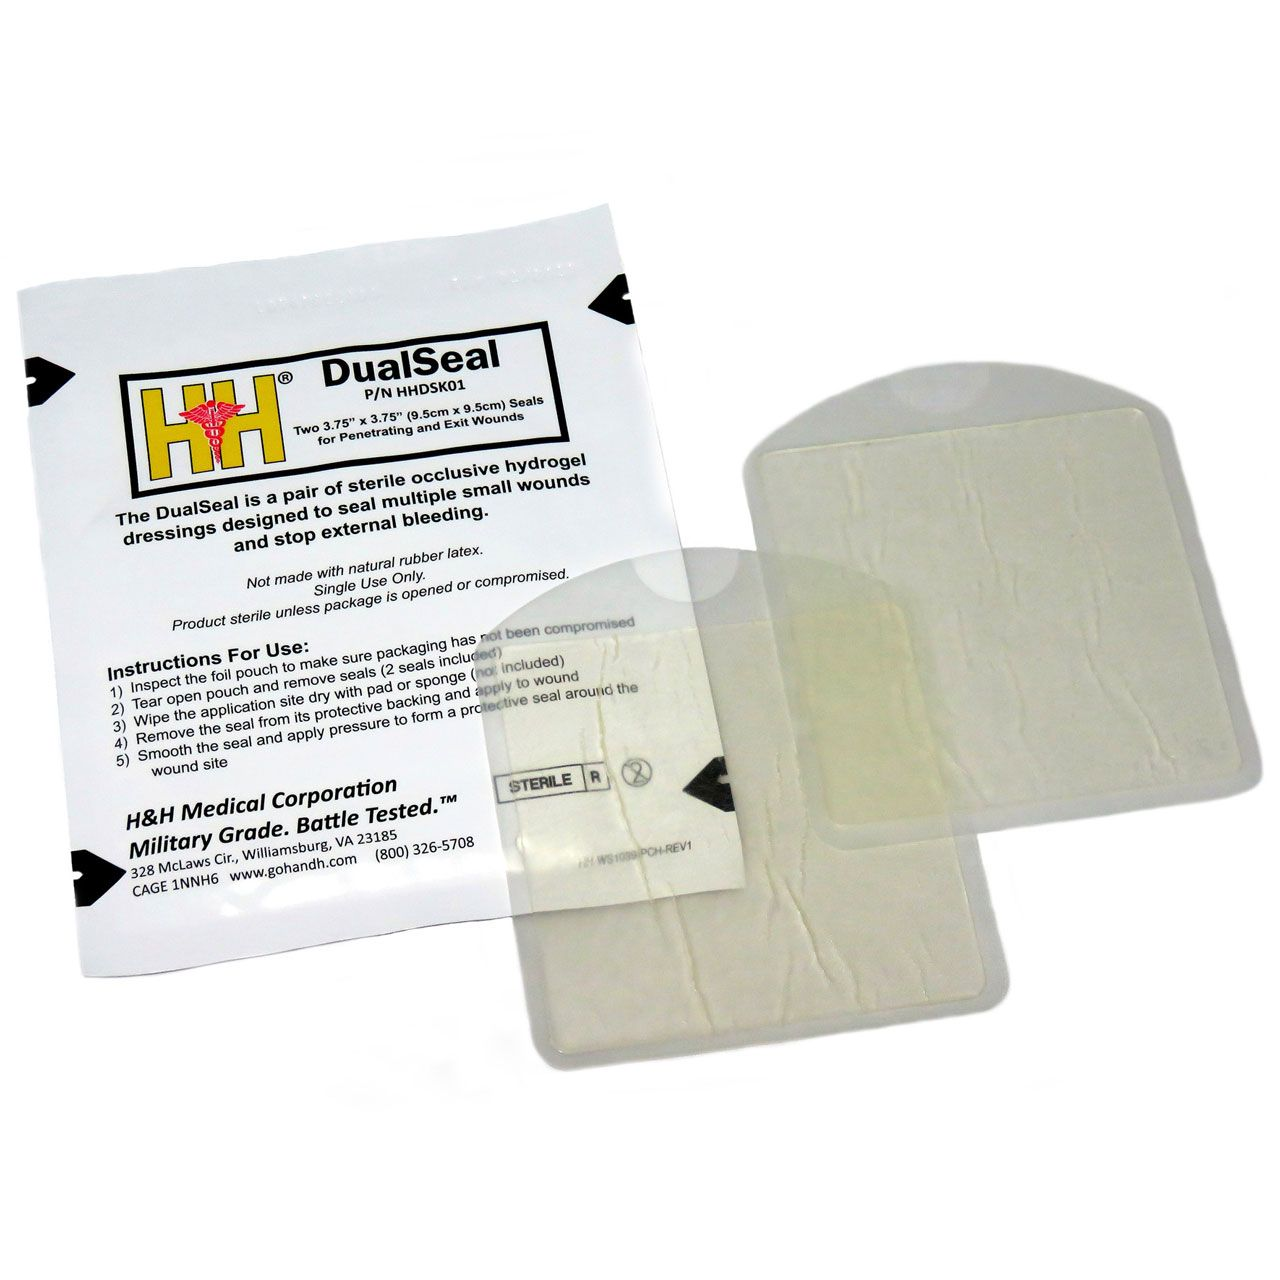 DualSeal Chest Seal Two-Pack